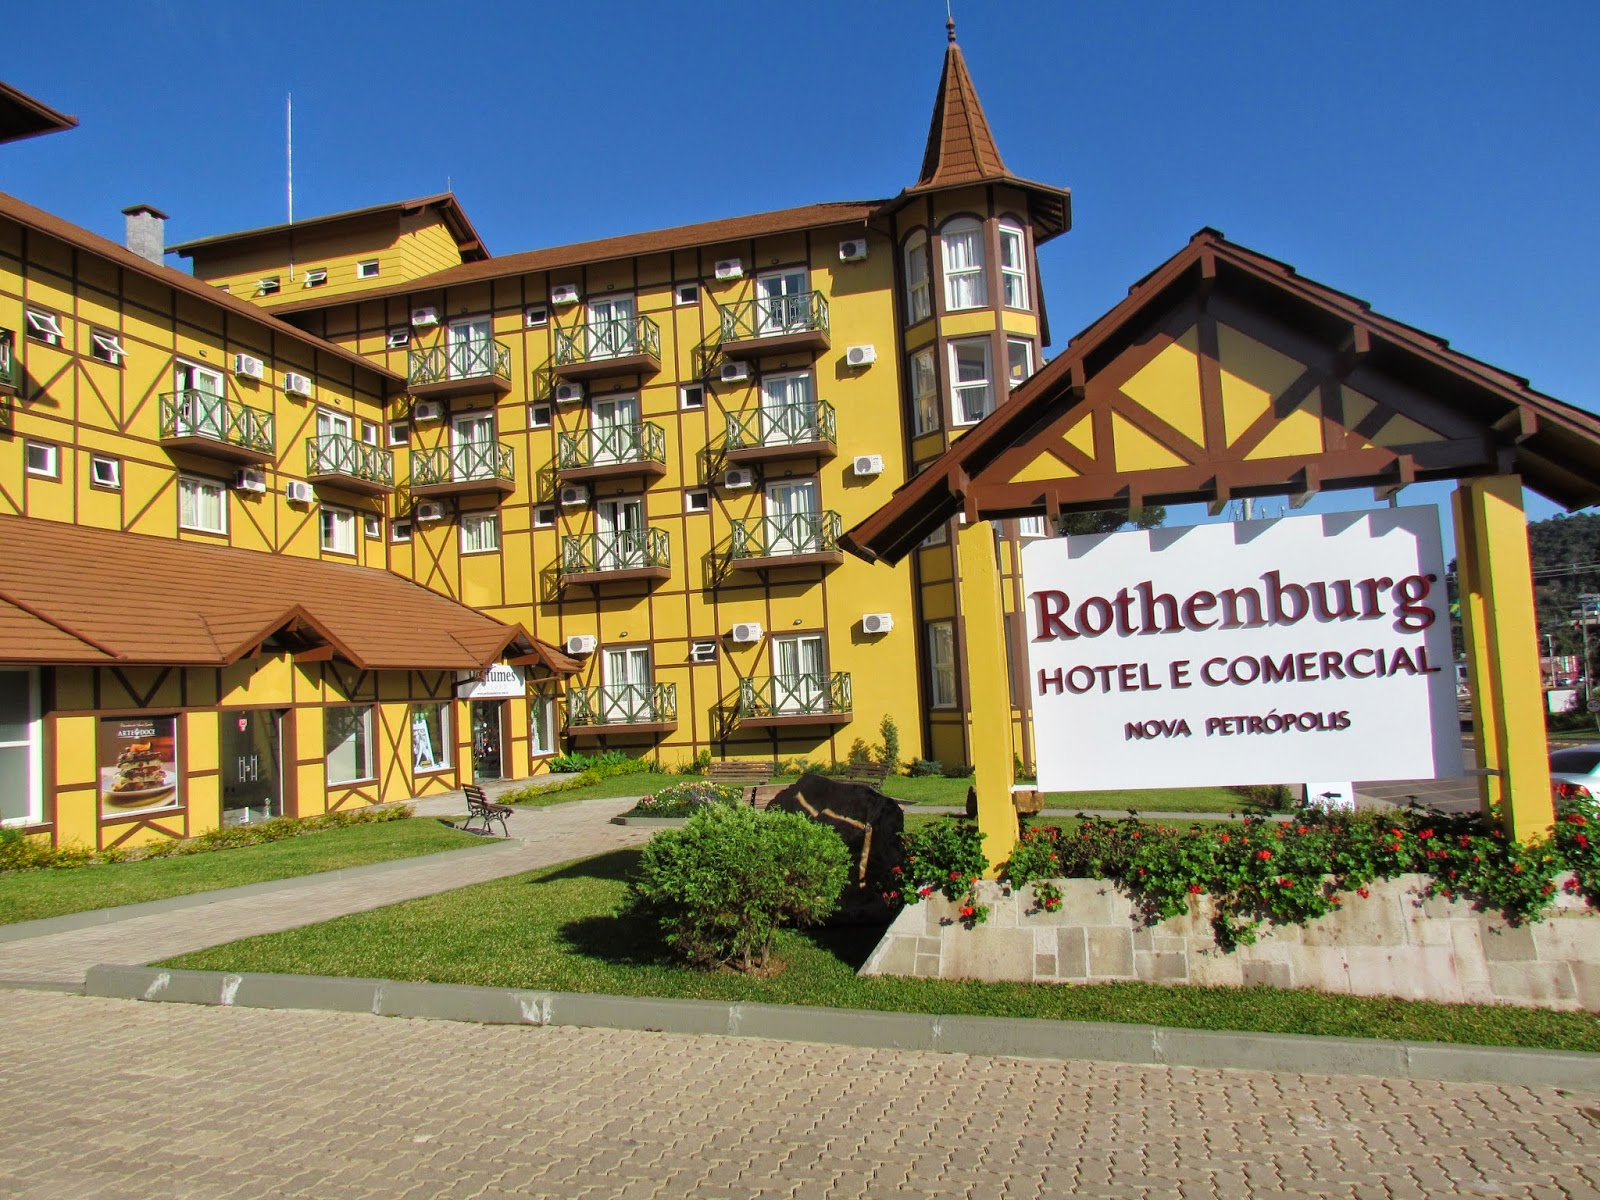 HOTEL ROTHENBURG